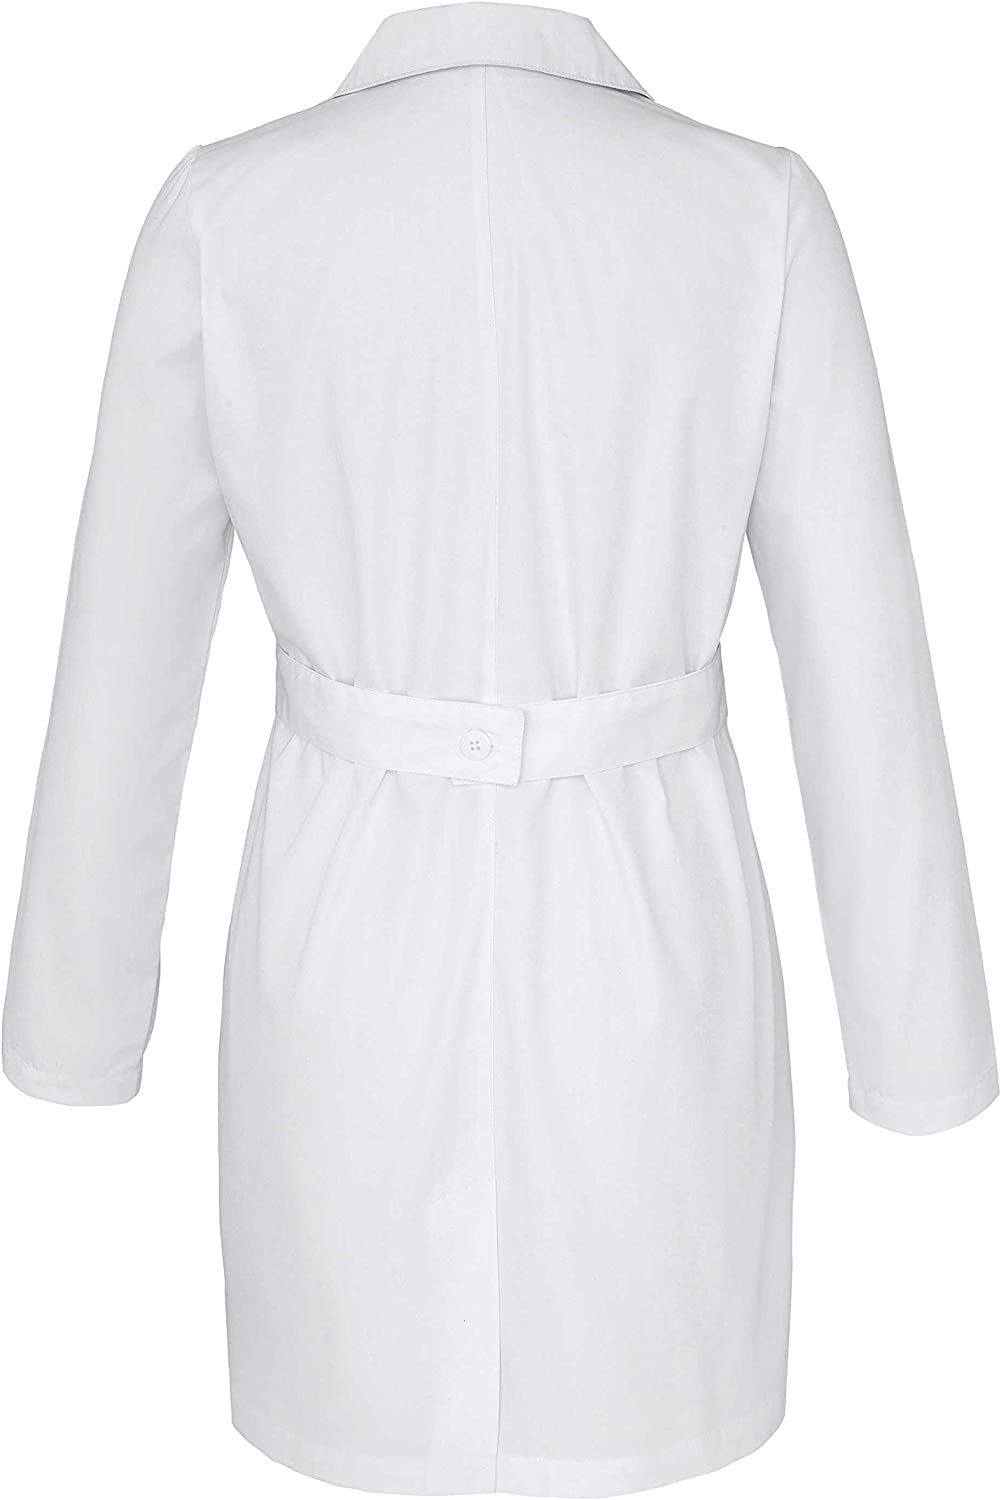 """Adar Universal Lab Coats for Women - Belted 33"""" Lab Coat: Clothing"""